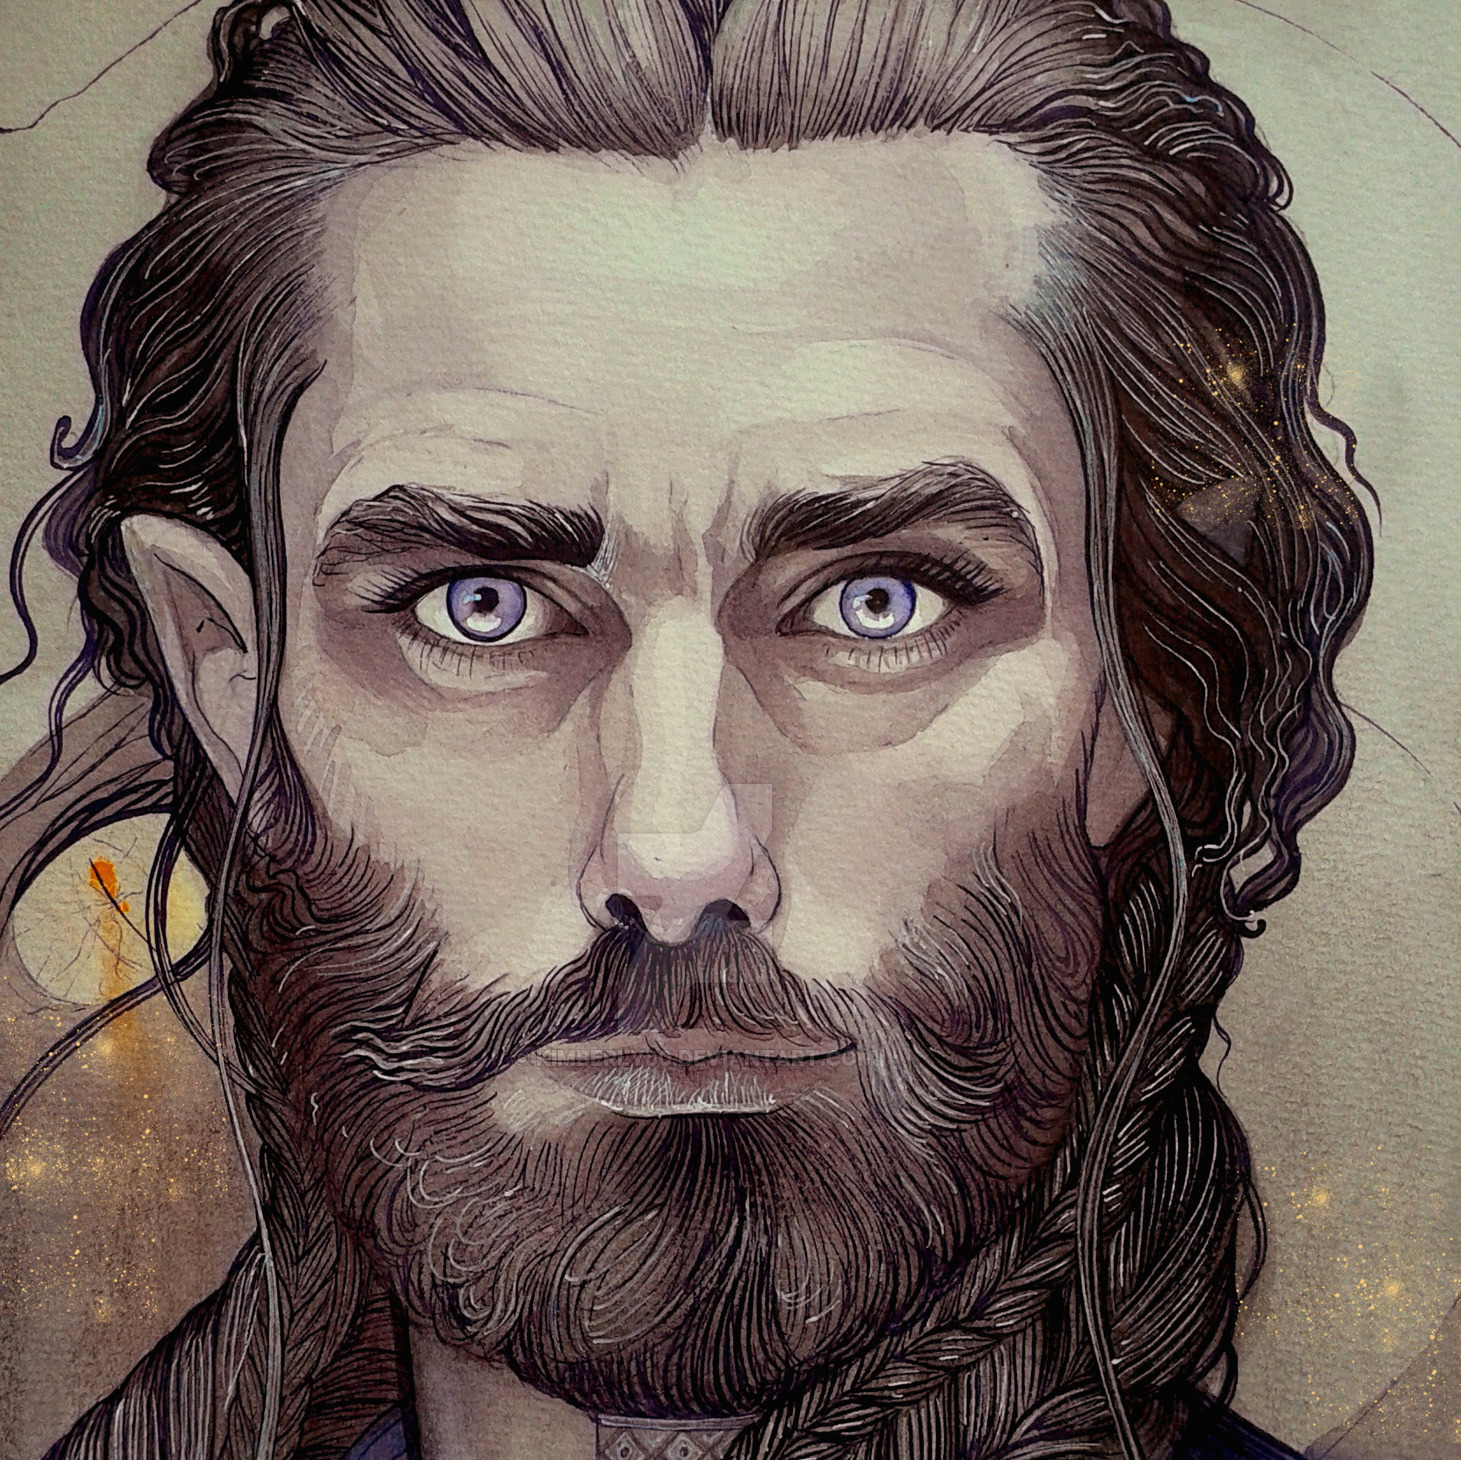 father_durin_by_kimberly80-d6gvcfm.jpg